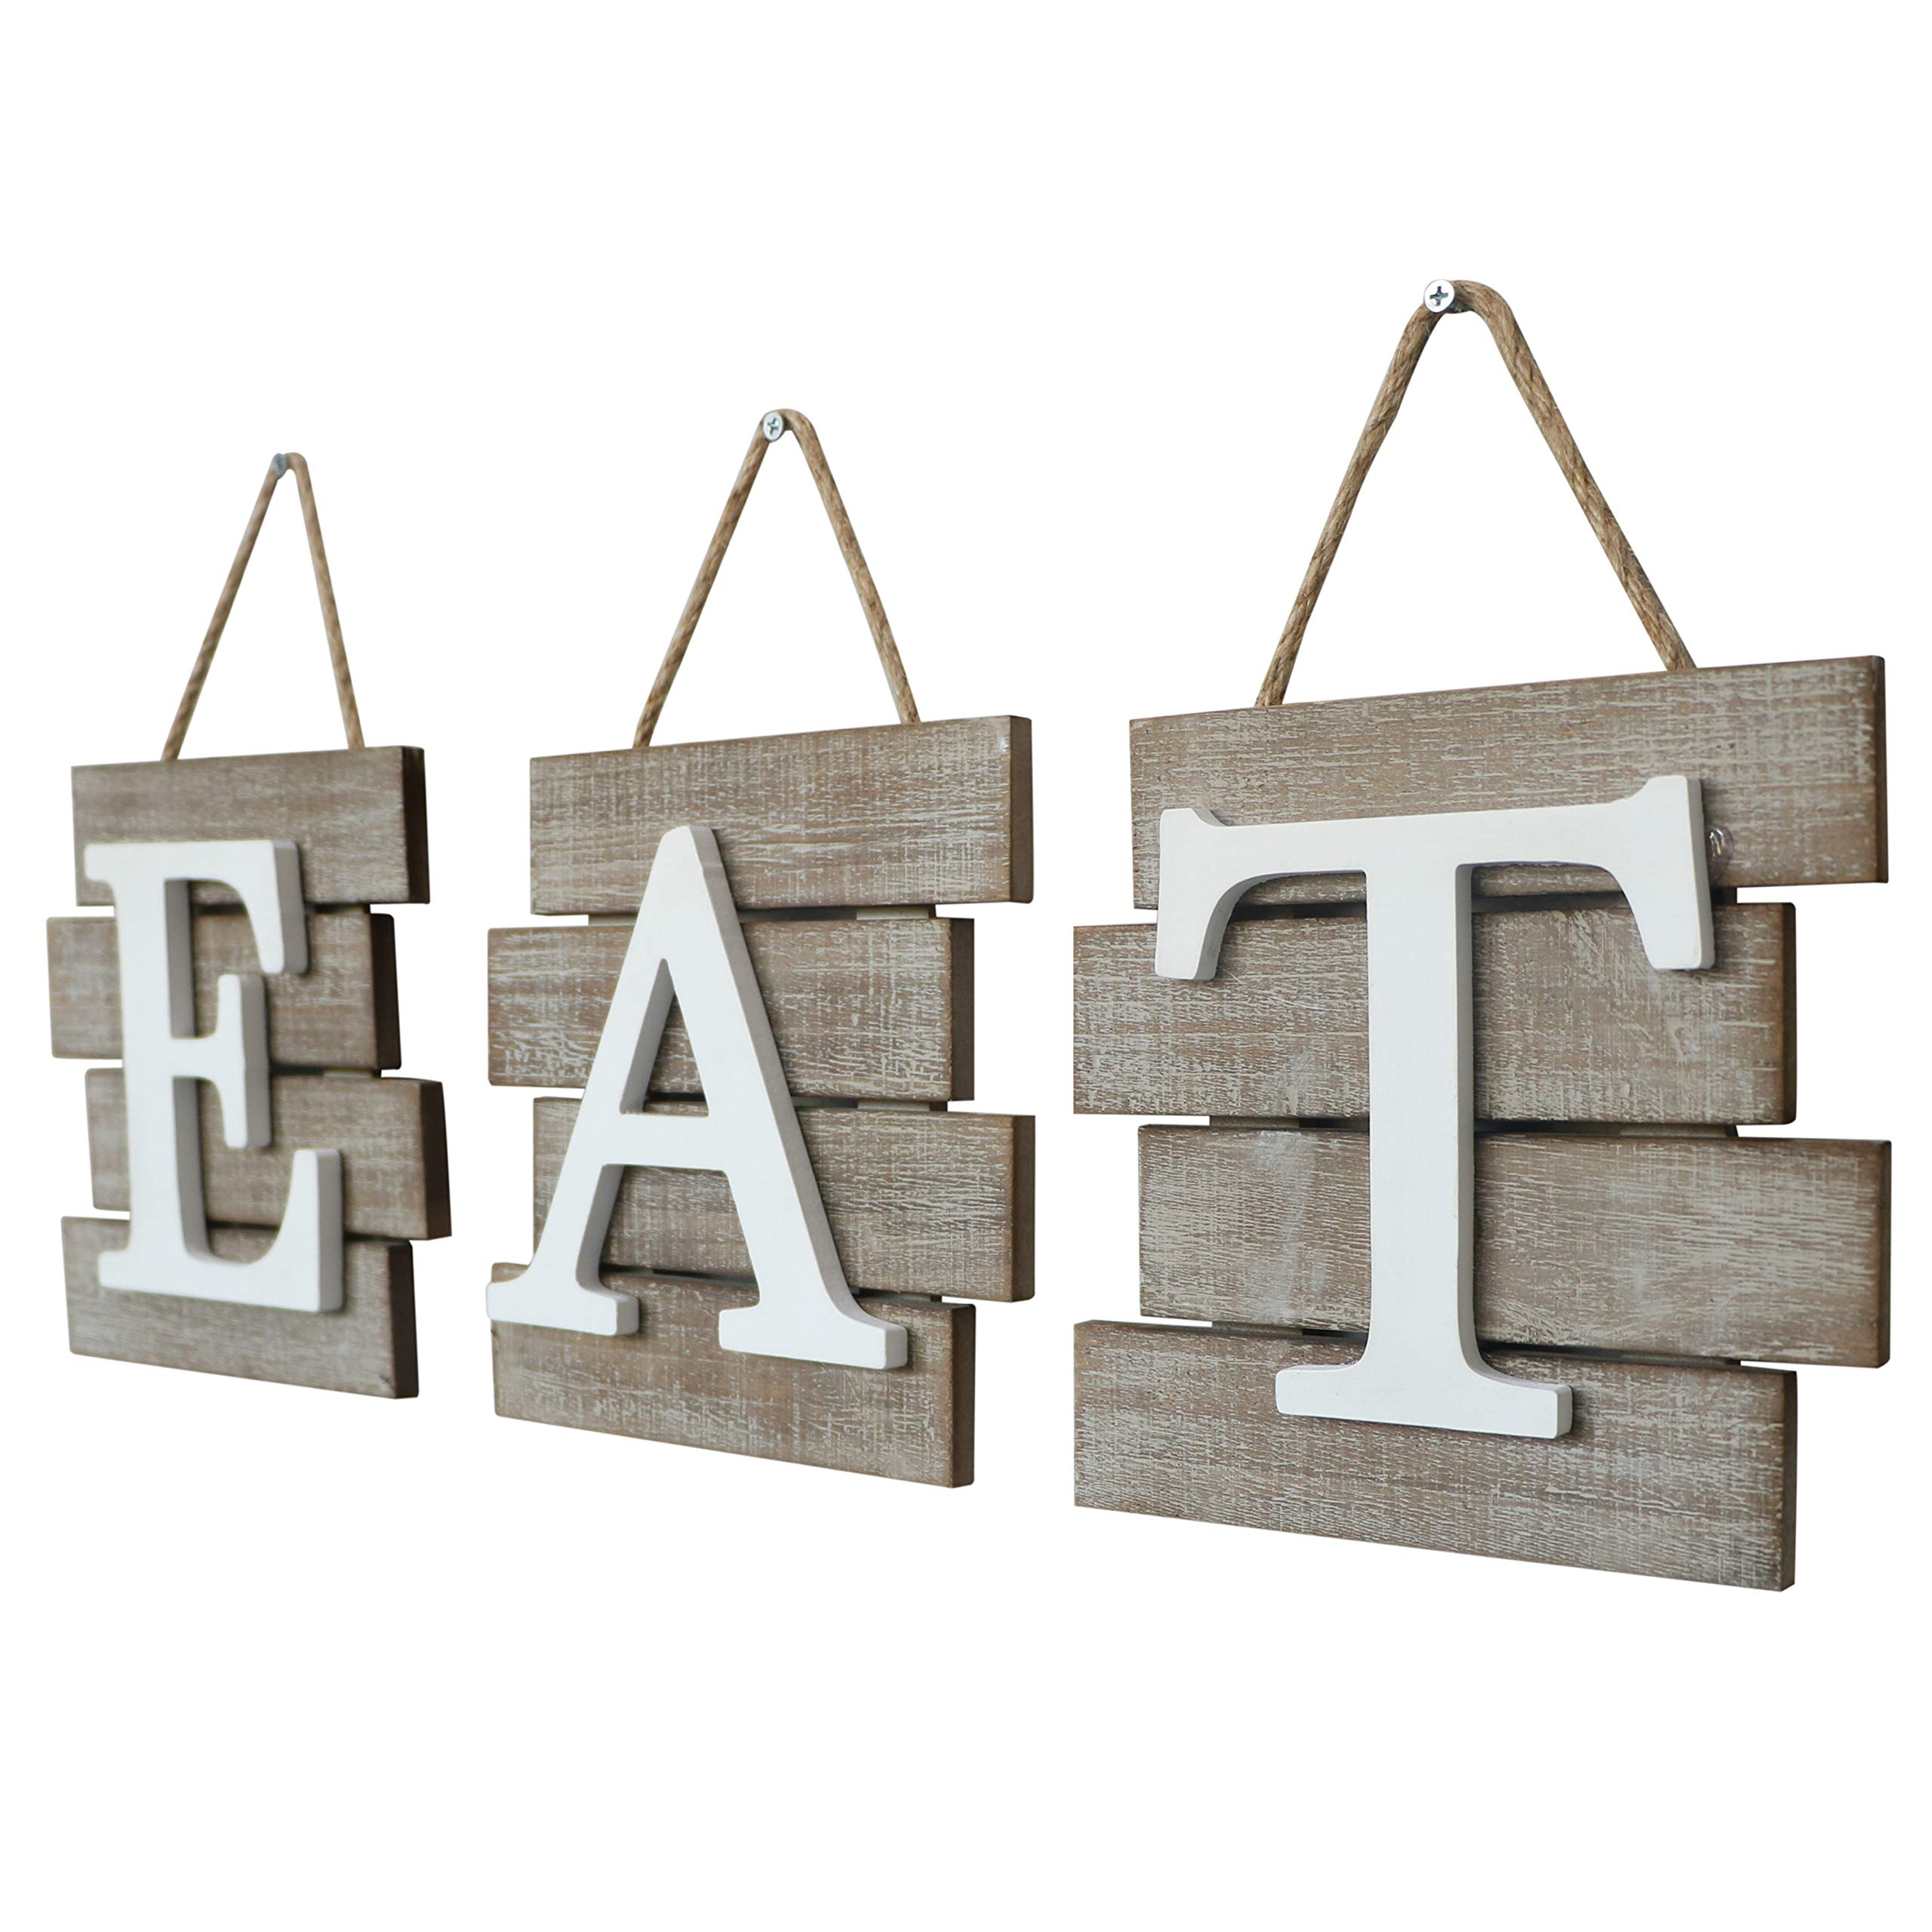 """Barnyard Designs Eat Sign Wall Decor for Kitchen and Home, Distressed Natural, Rustic Farmhouse Country Decorative Wall Art 24'' x 8"""" by Barnyard Designs (Image #5)"""